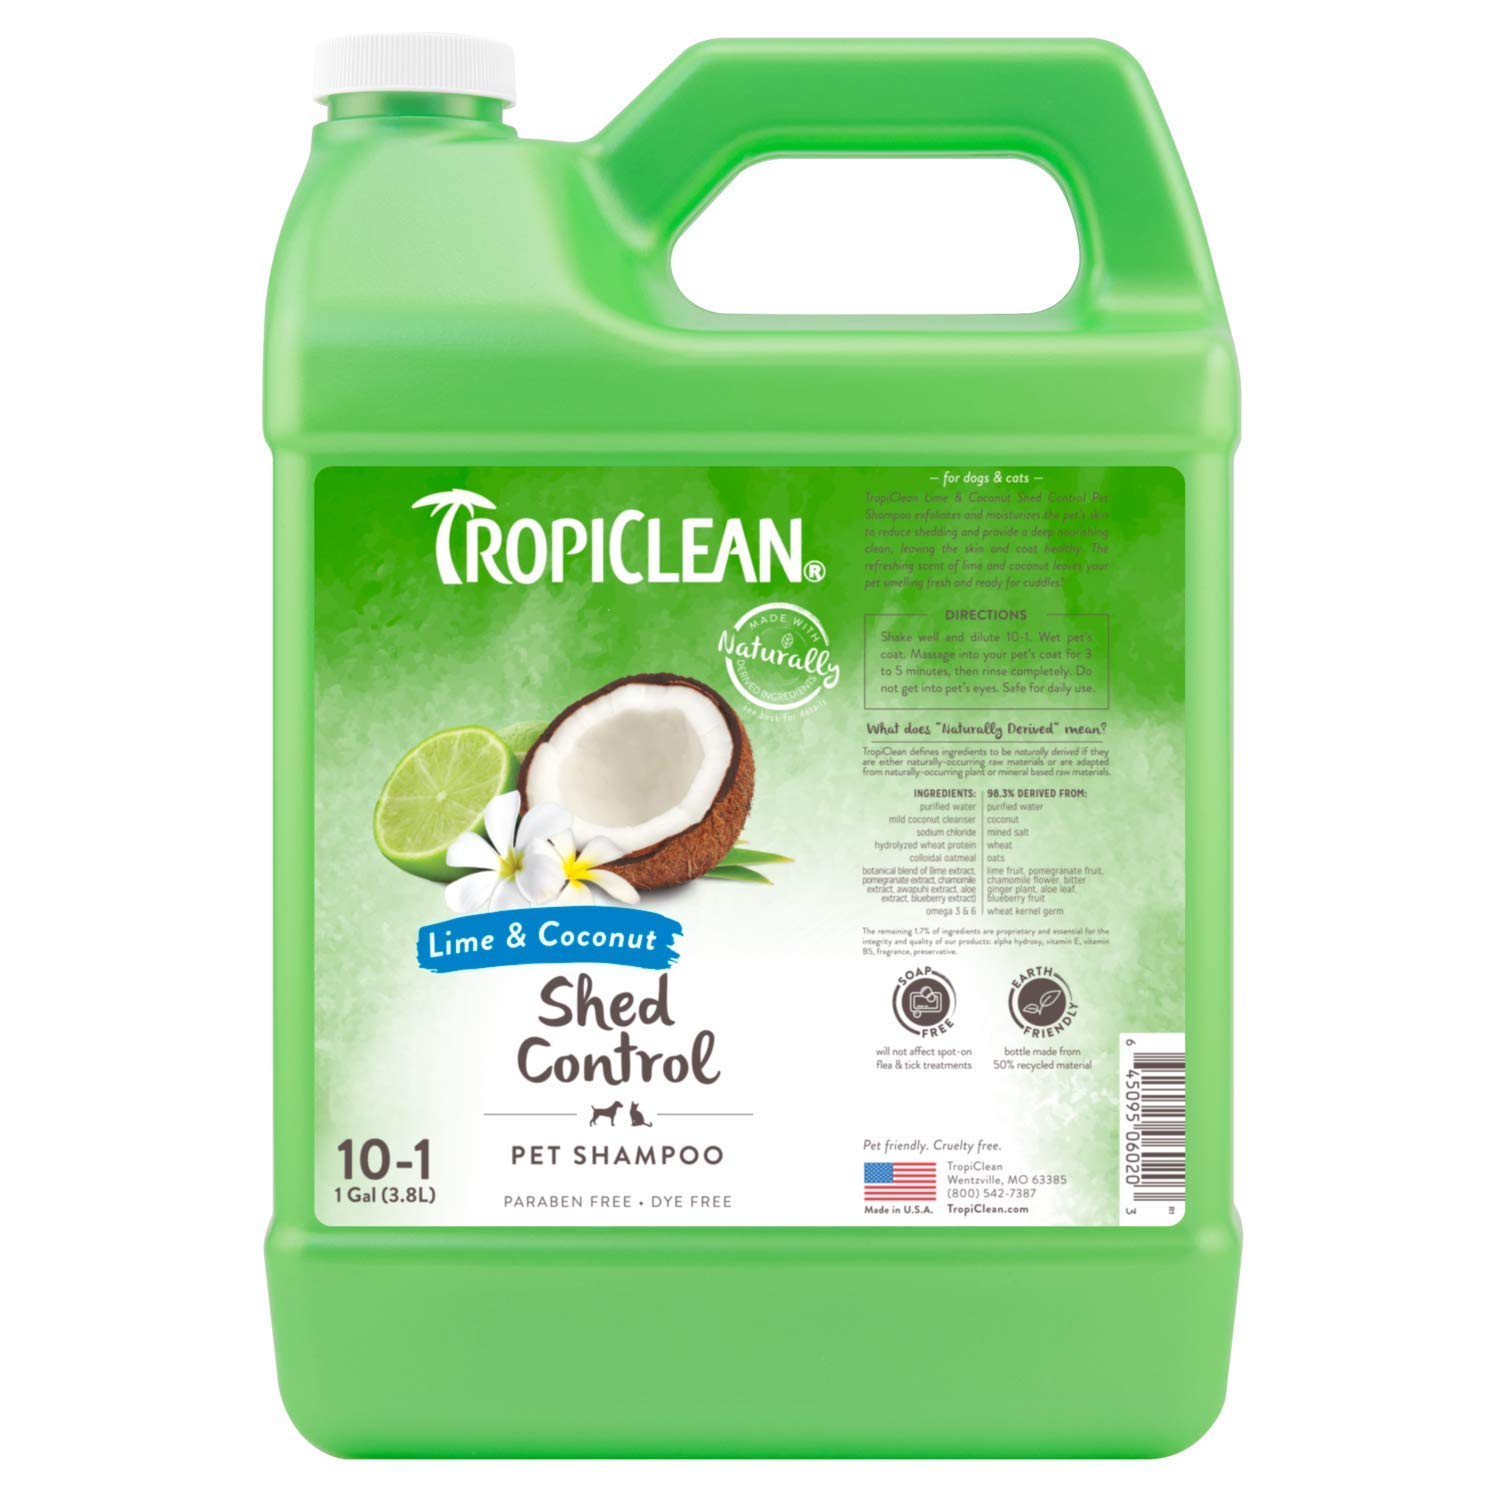 TropiClean Lime and Coconut Shed Control Shampoo for Pets, 1 gal, Made in USA